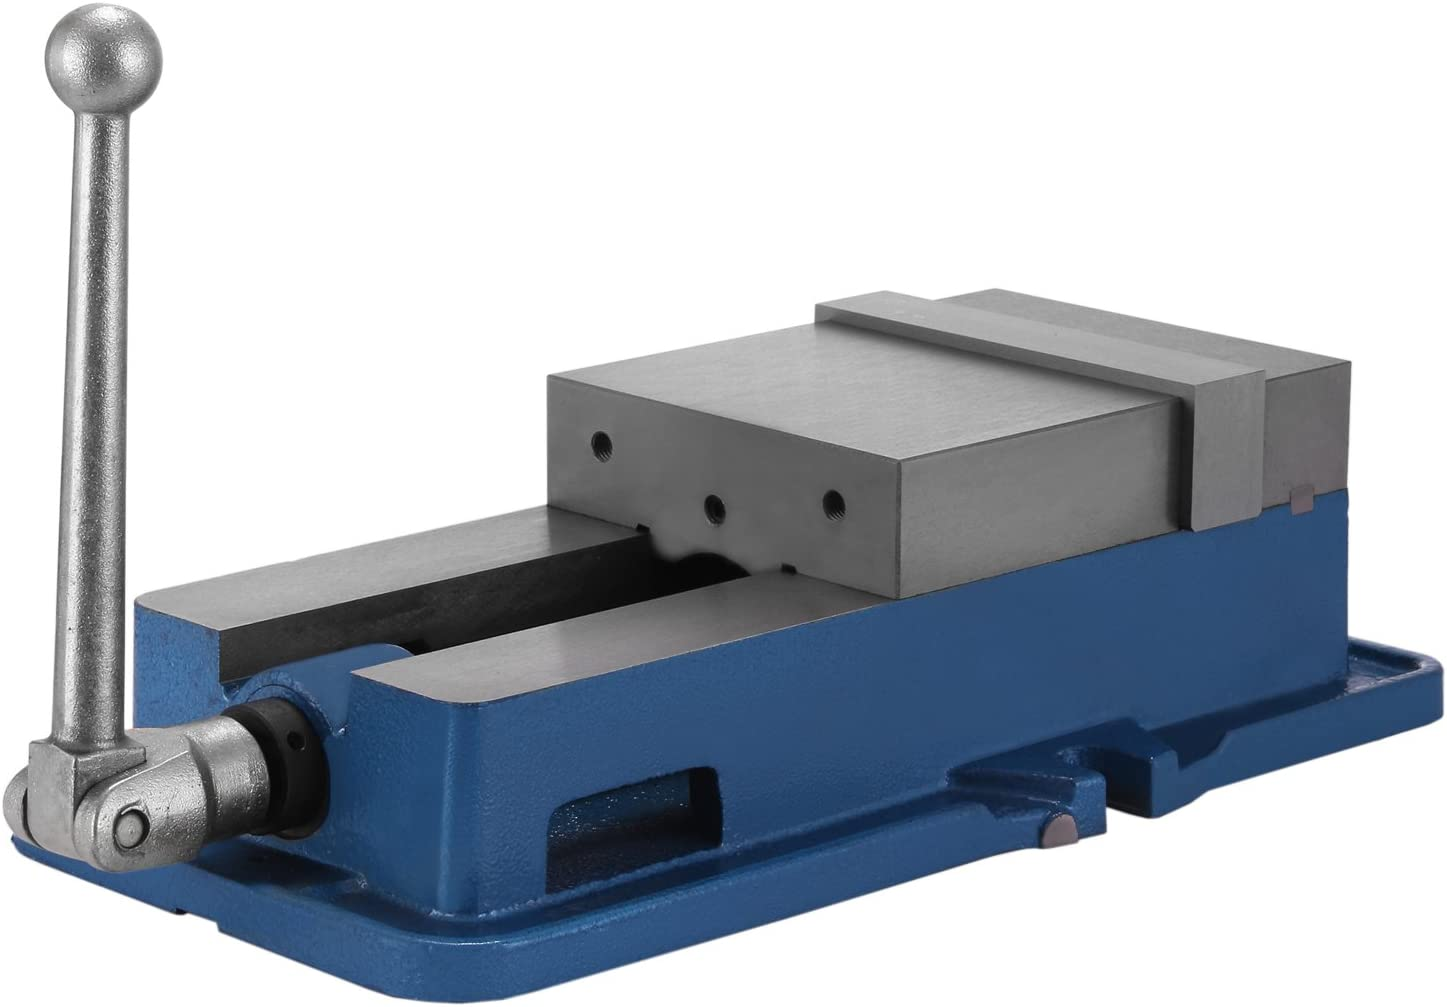 Prolinemax 4 Precision Toolmakers Vise Max Opening 4-3//4 Milling Mill Lathe Steel Vise